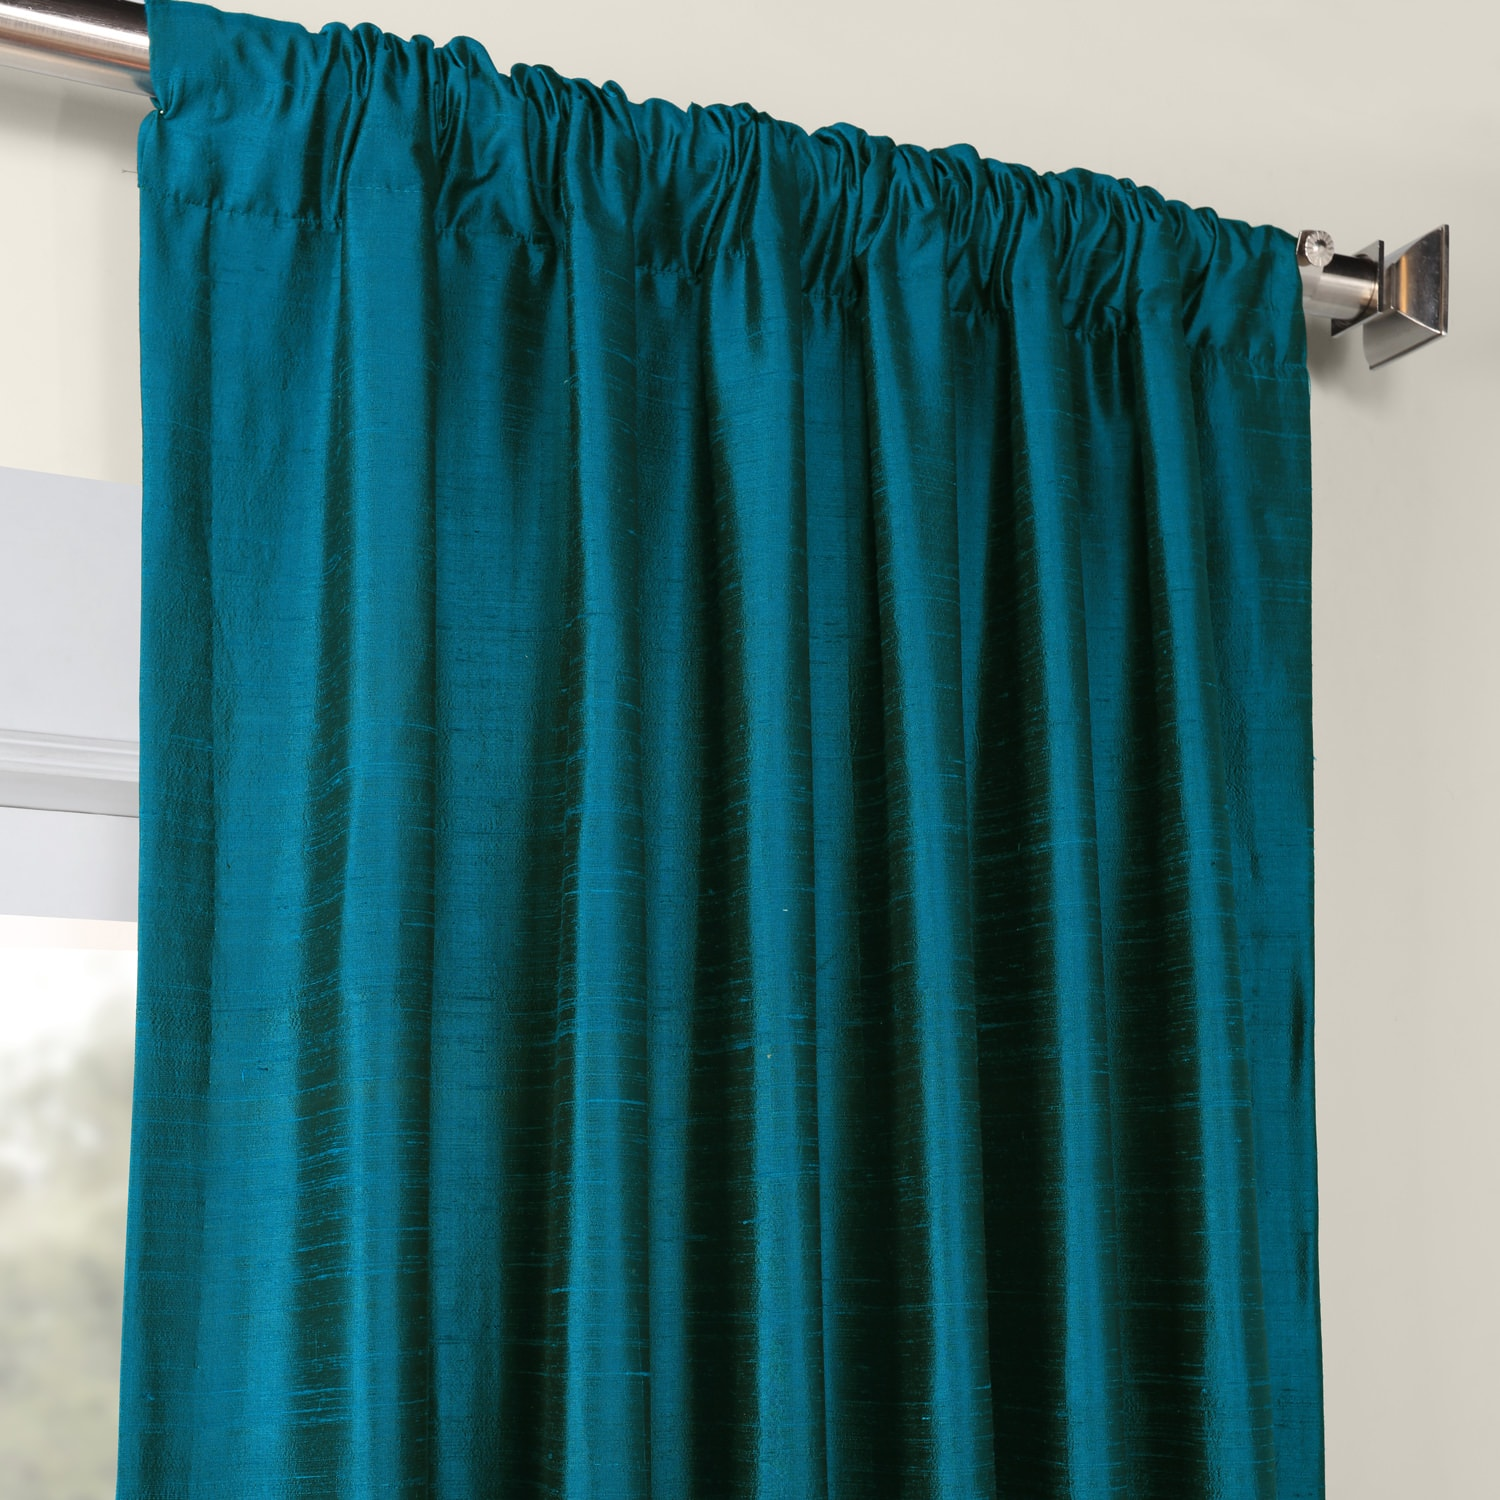 Empress Teal Textured Dupioni Silk Curtain